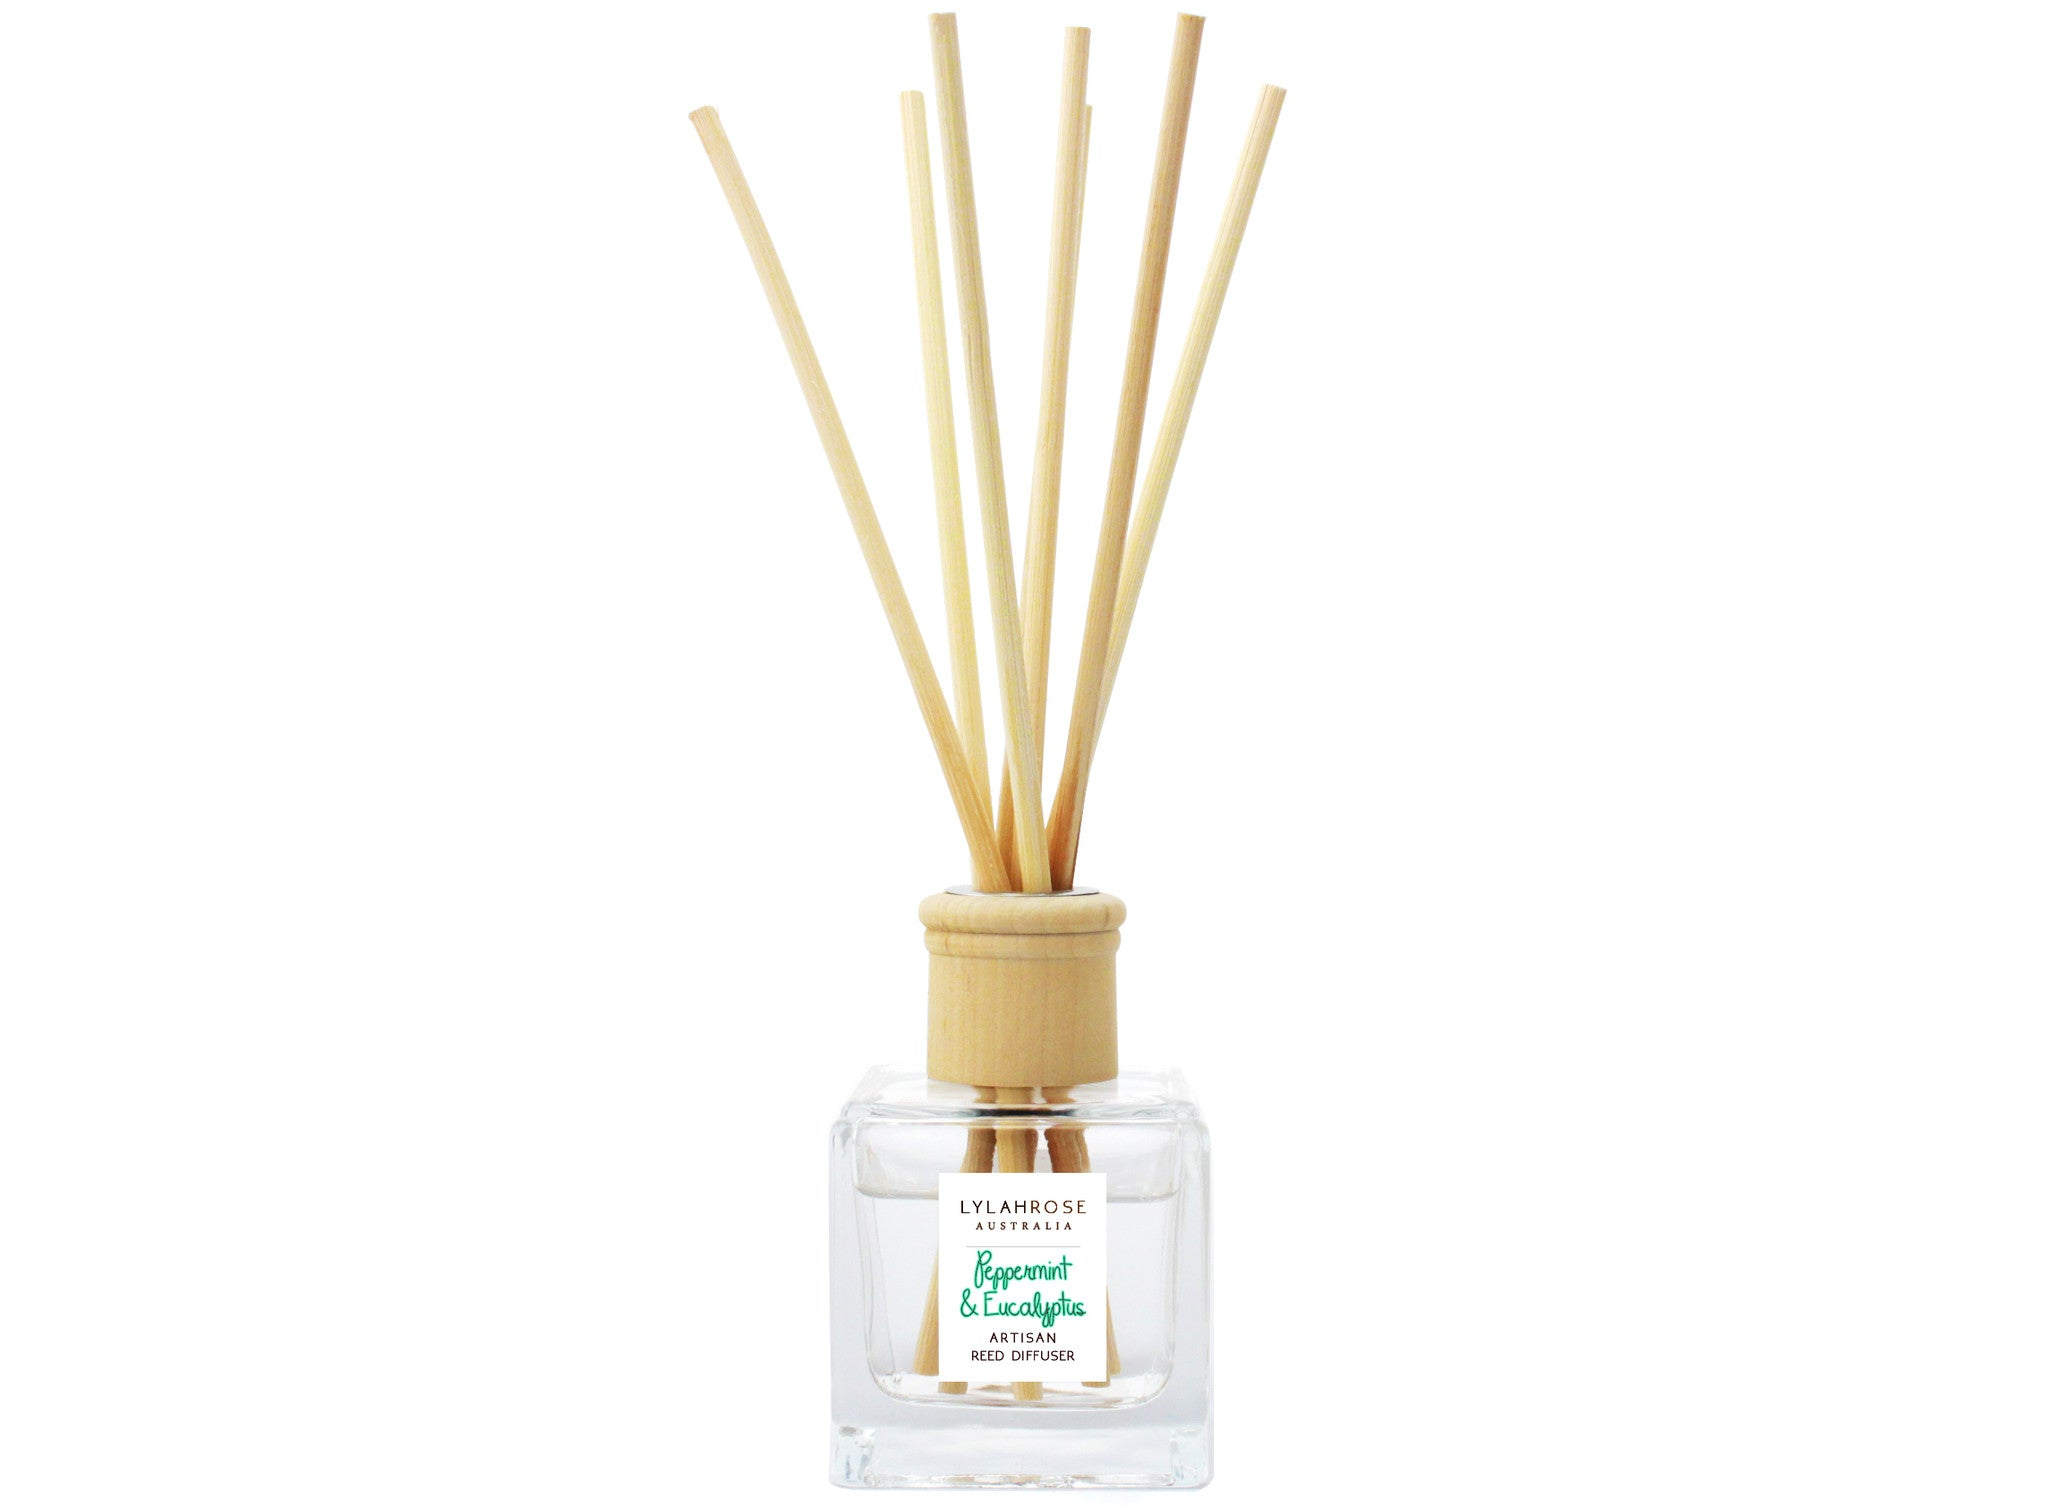 peppermint-eucalyptus-140ml-reed-diffuser